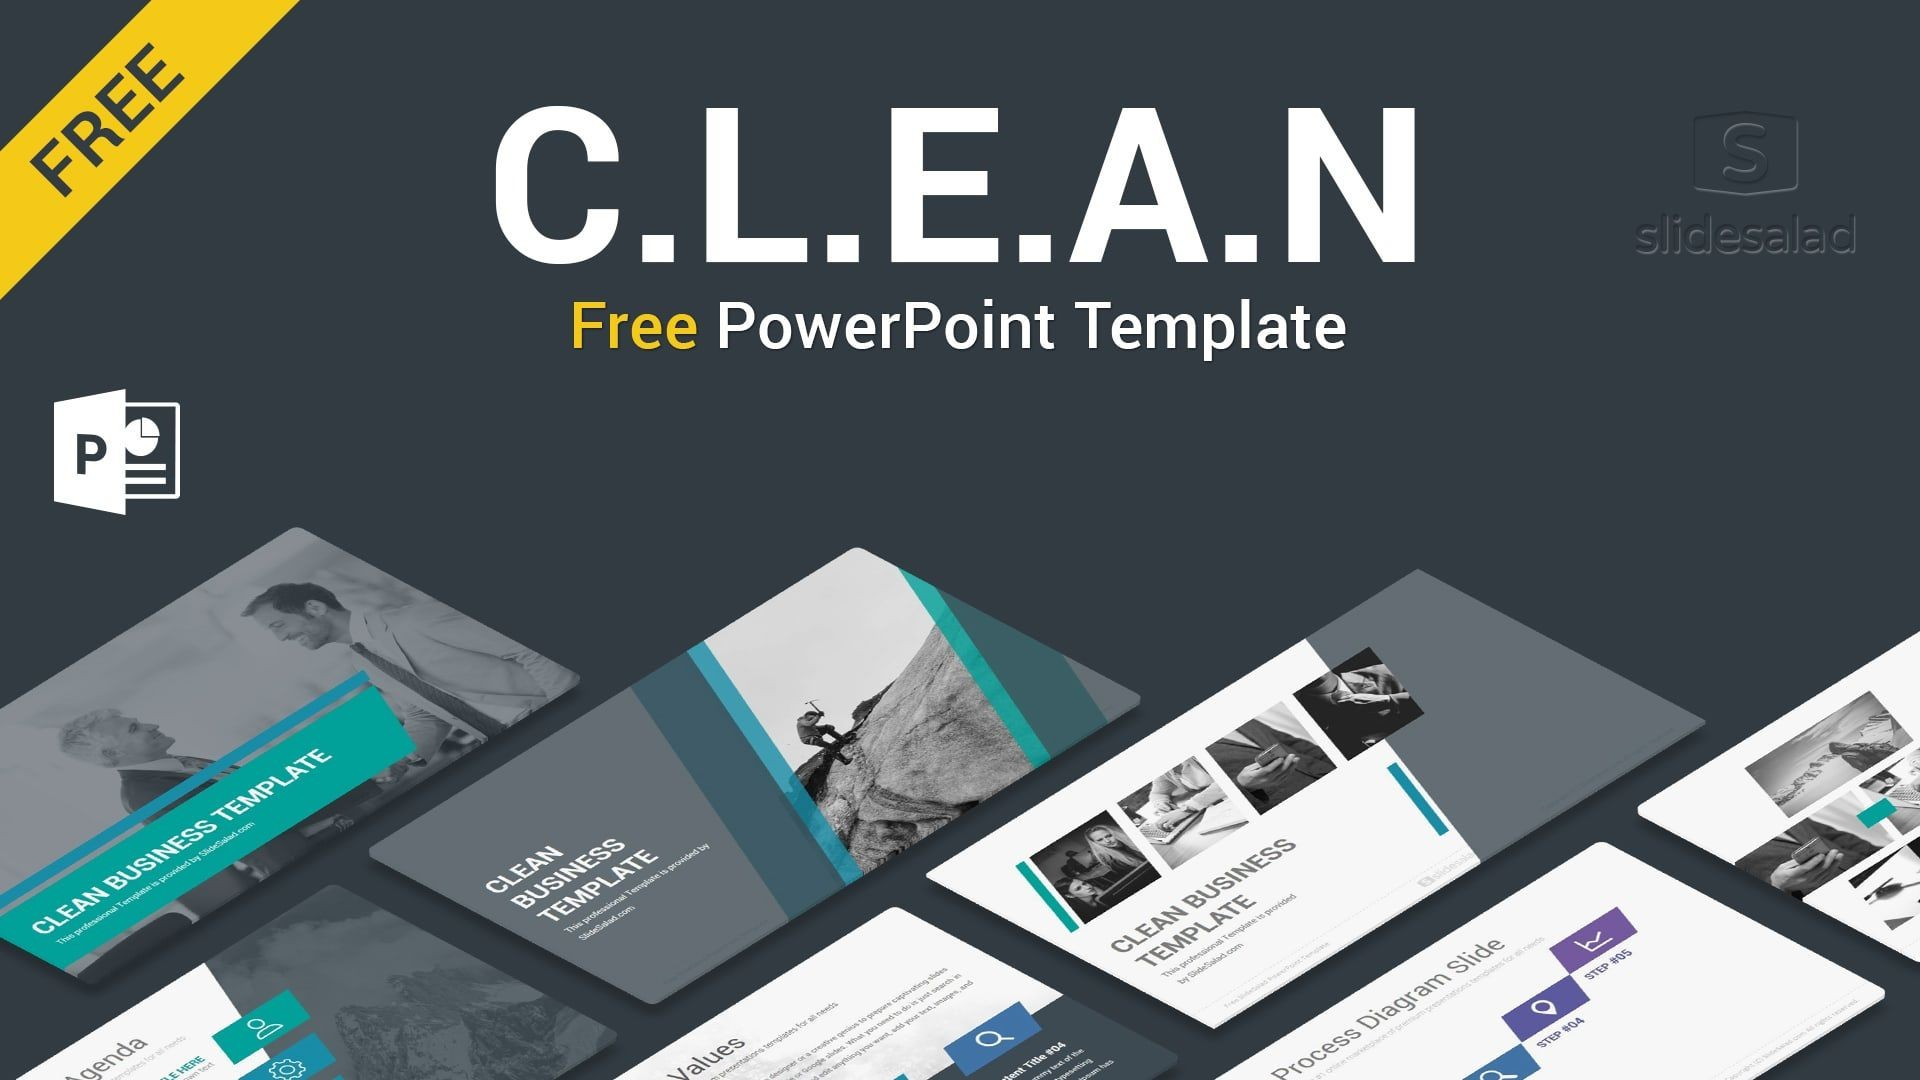 004 Stunning Simple Ppt Template Free Download For Project Presentation High Resolution 1920